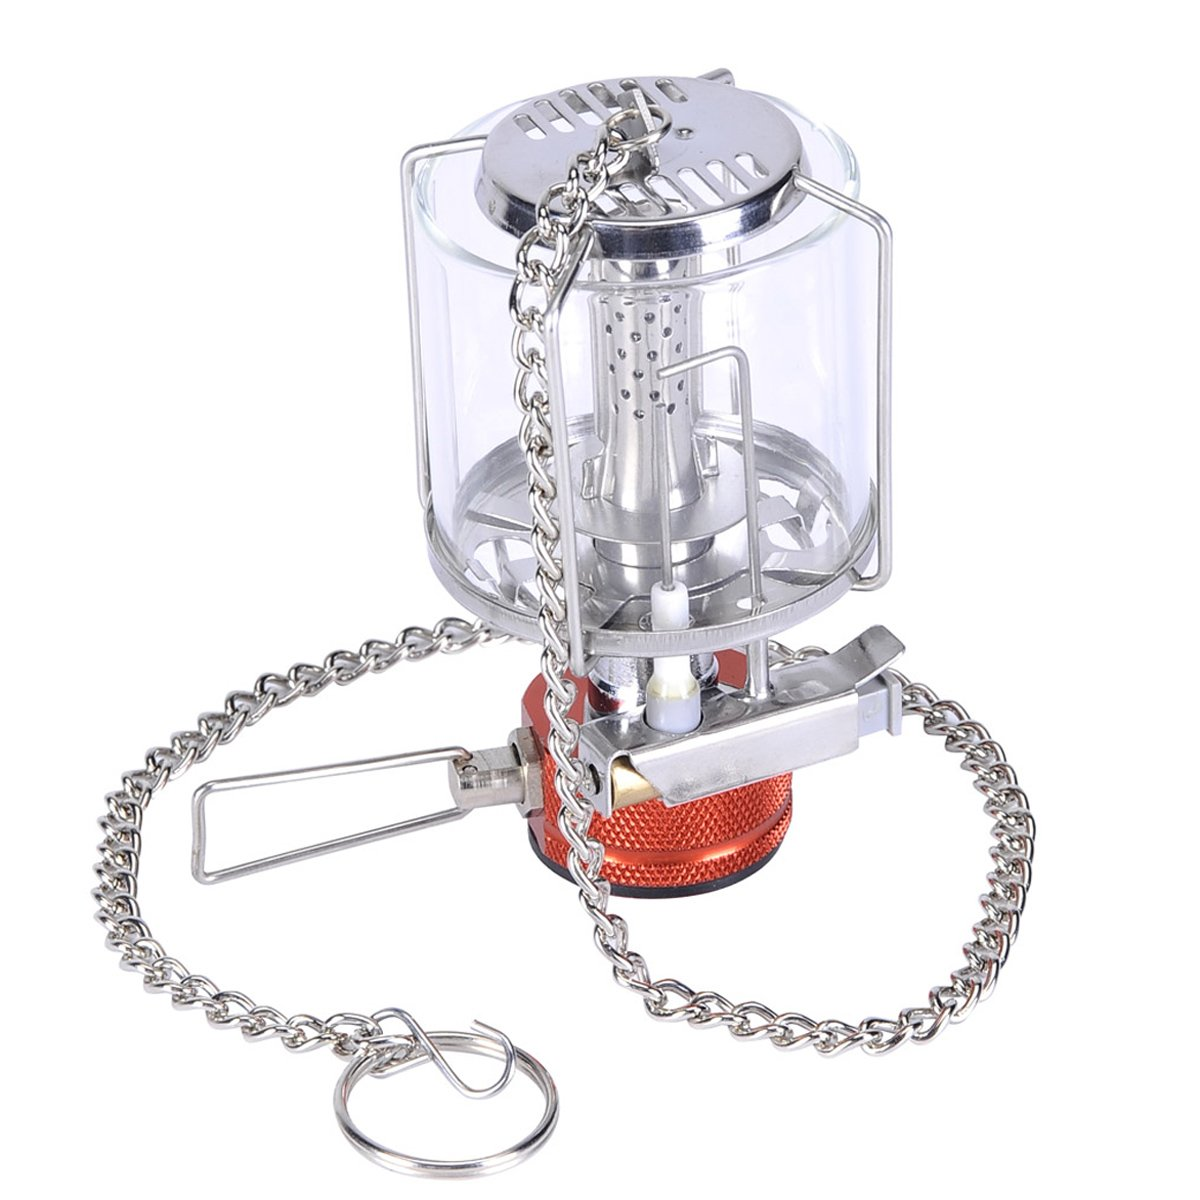 BULIN portable gas (with gas leak measures safety valve) lantern household cassette gas conversion adapter & exchange for the mantle with three! Voltage ignition camping, climbing! BL300-F1